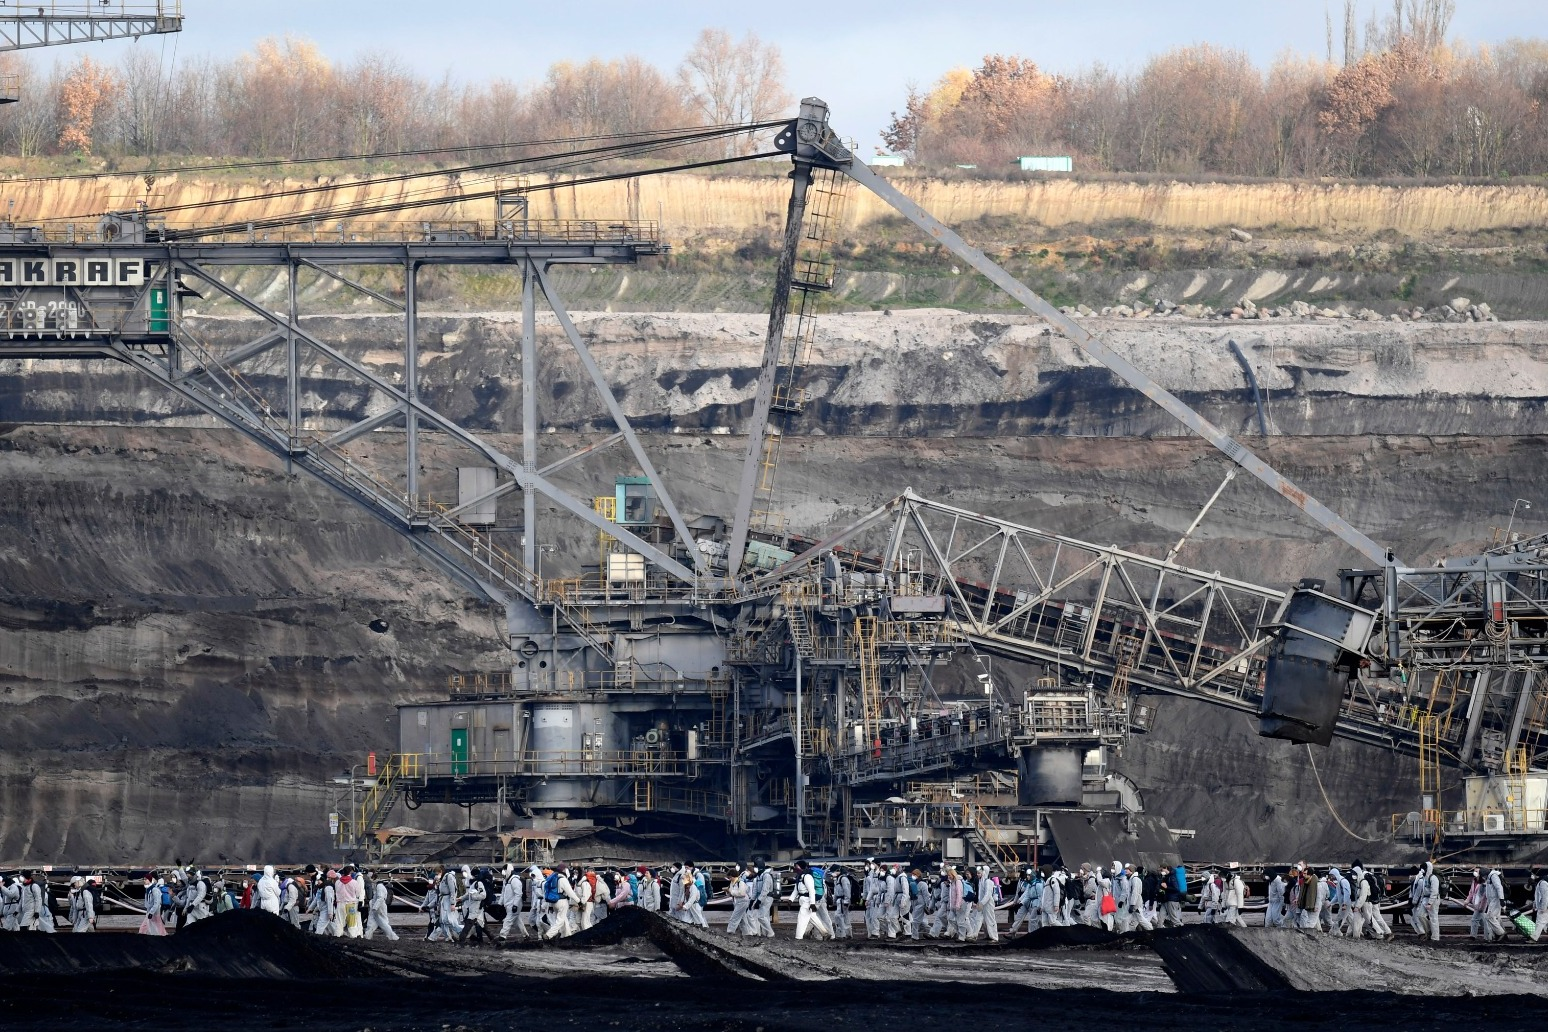 CLIMATE PROTESTERS TARGET EAST GERMAN COAL MINES